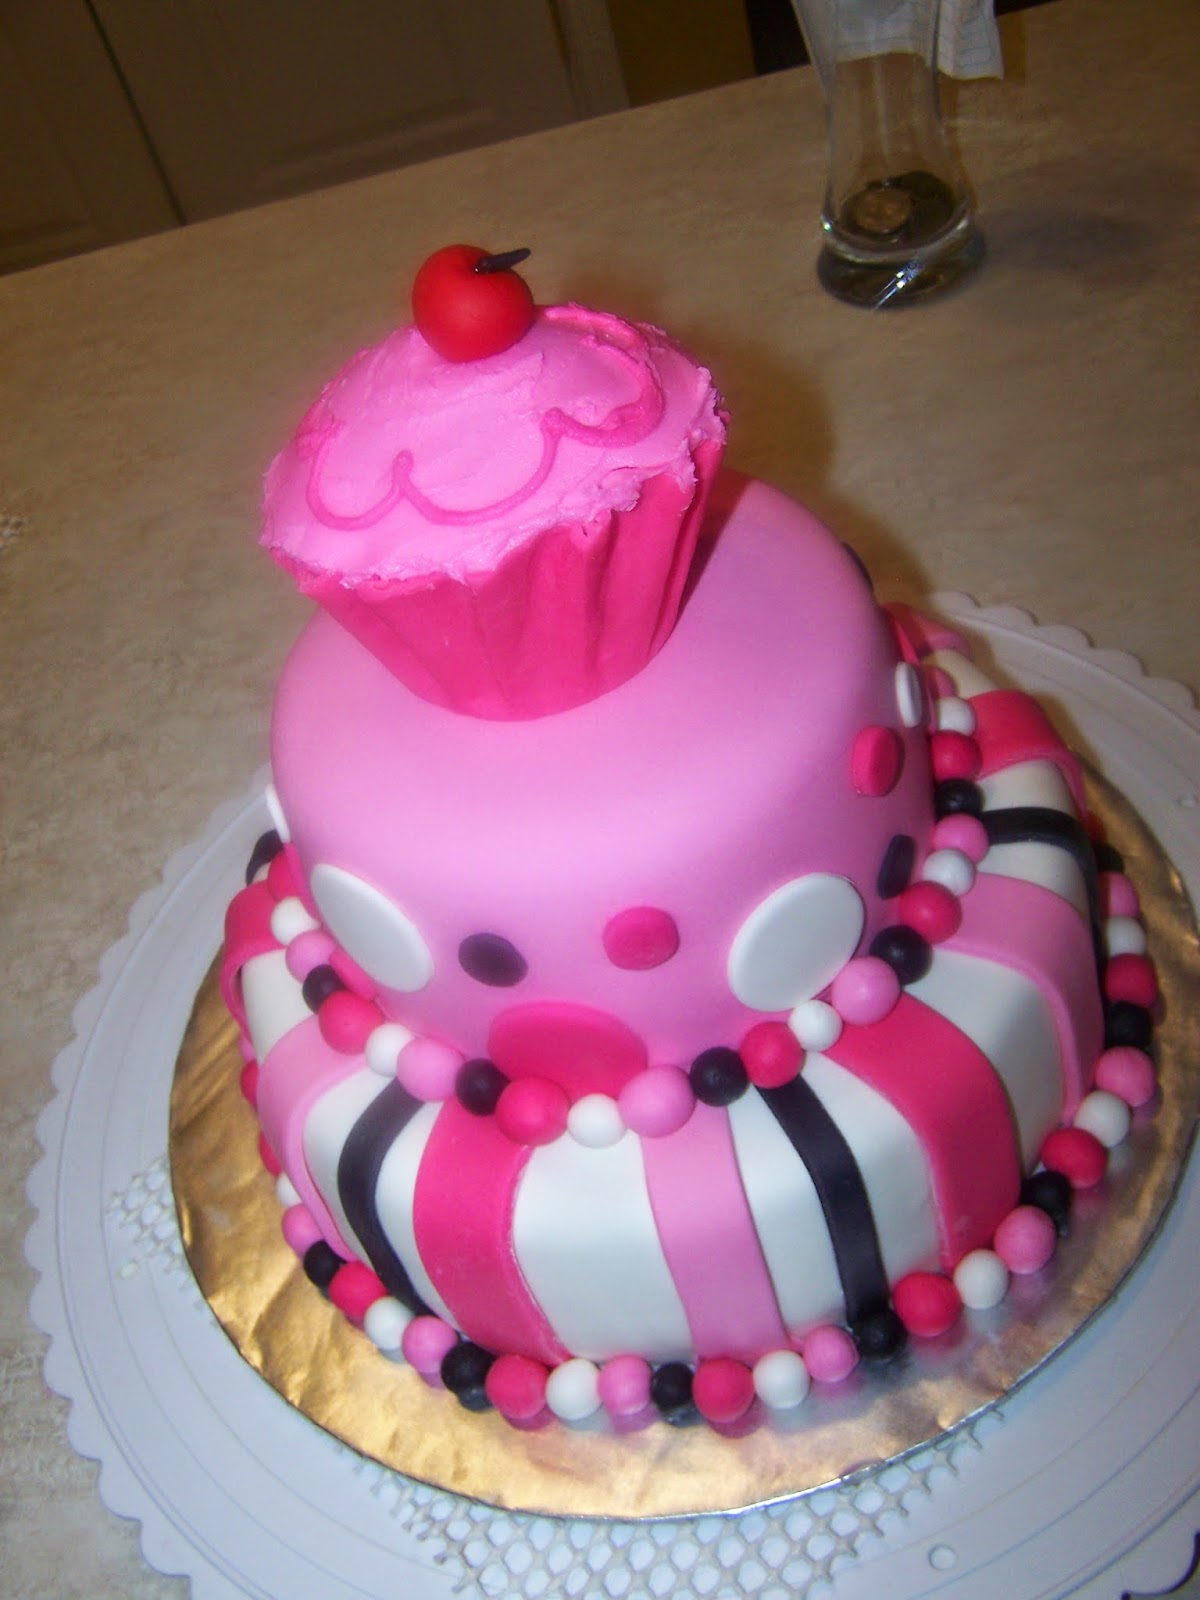 Birthday Cake Pics For Little Girl : Top 77 Photos Of Cakes For Birthday Girls Cakes Gallery